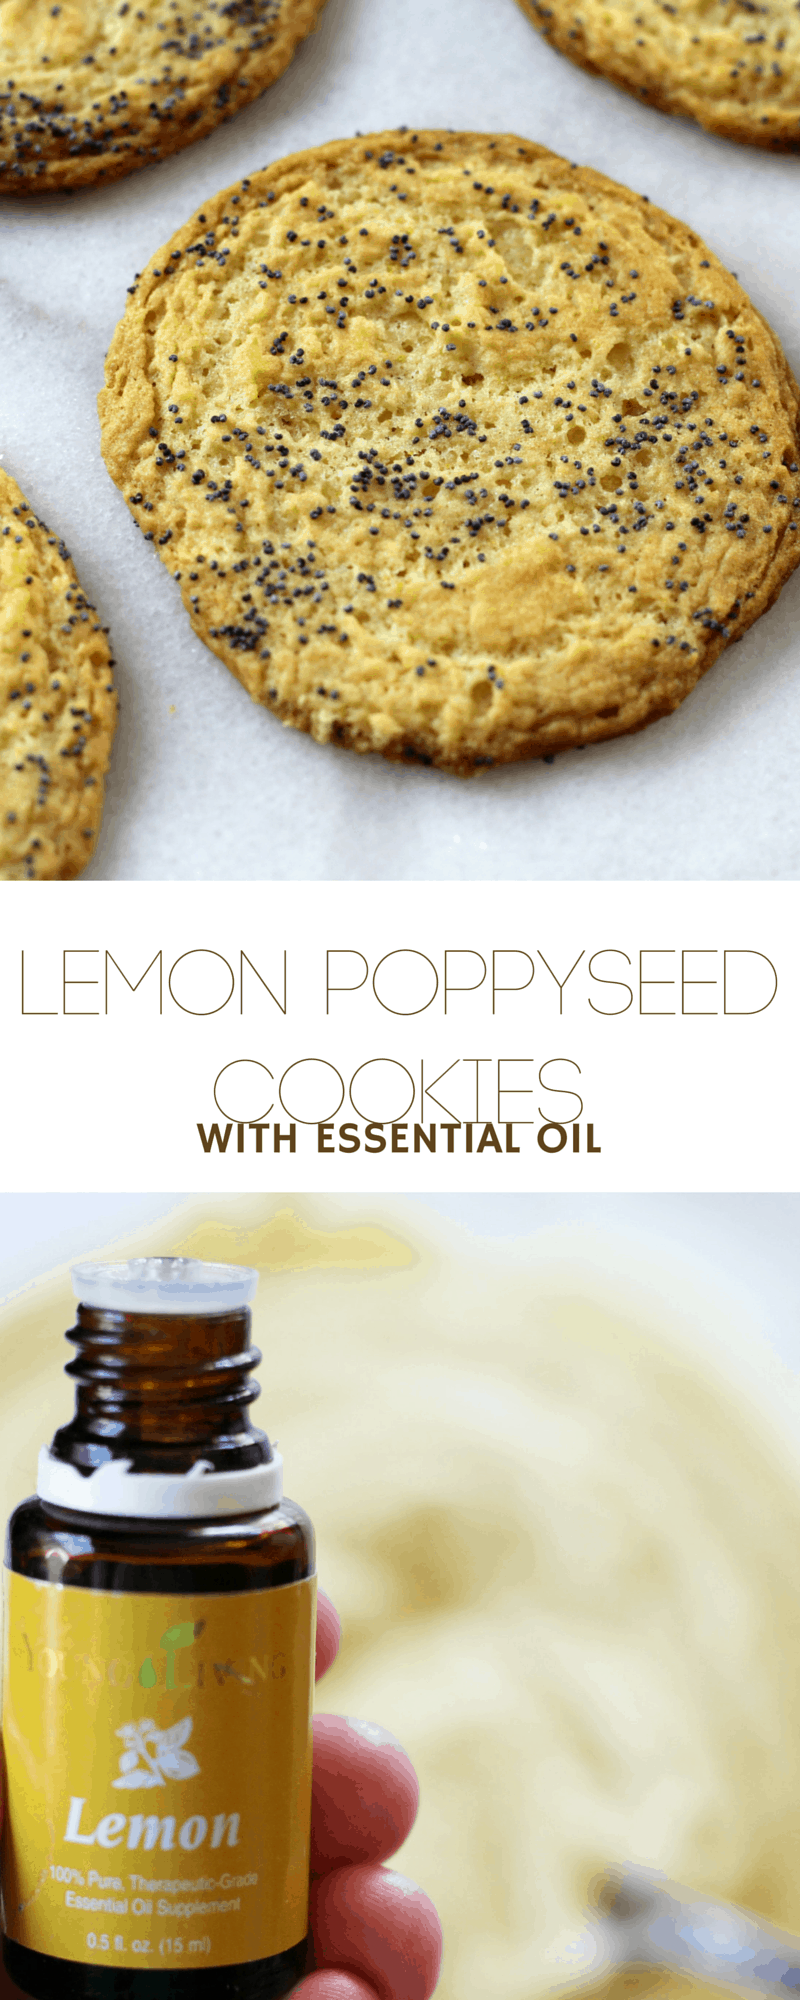 Lemon Poppy-Seed Cookies ~ Crisp & delicate, made with essentail oil for a lemony tang.